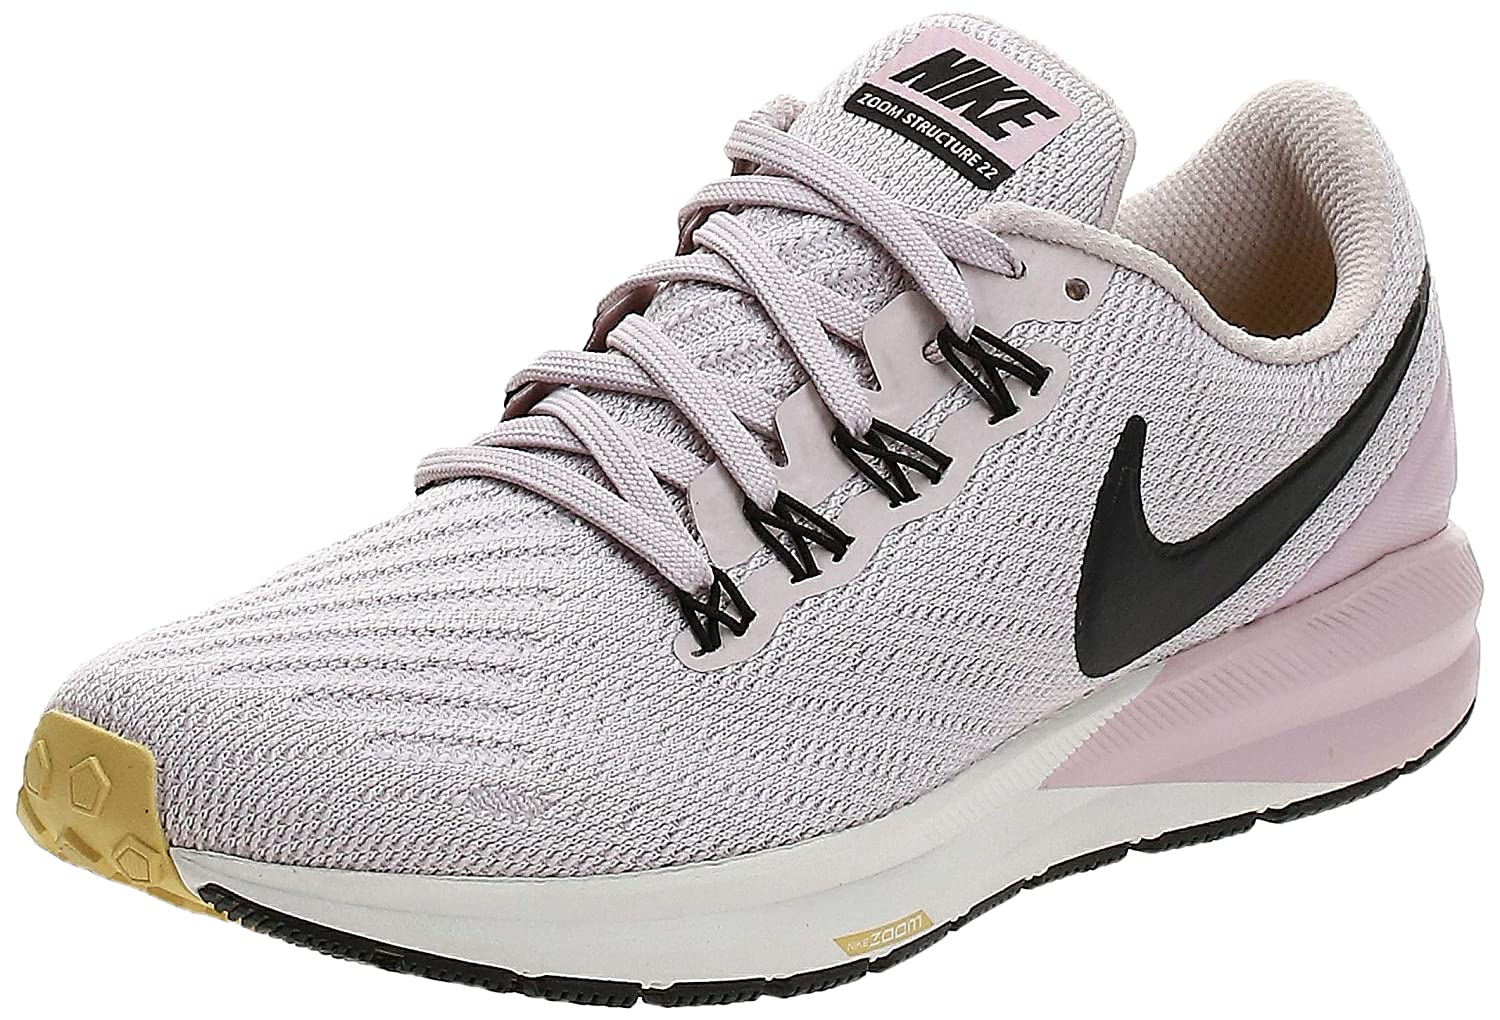 Frente inventar Alegre  Buy Nike Women W Air Zoom Structure 22 Running Shoes at Amazon.in